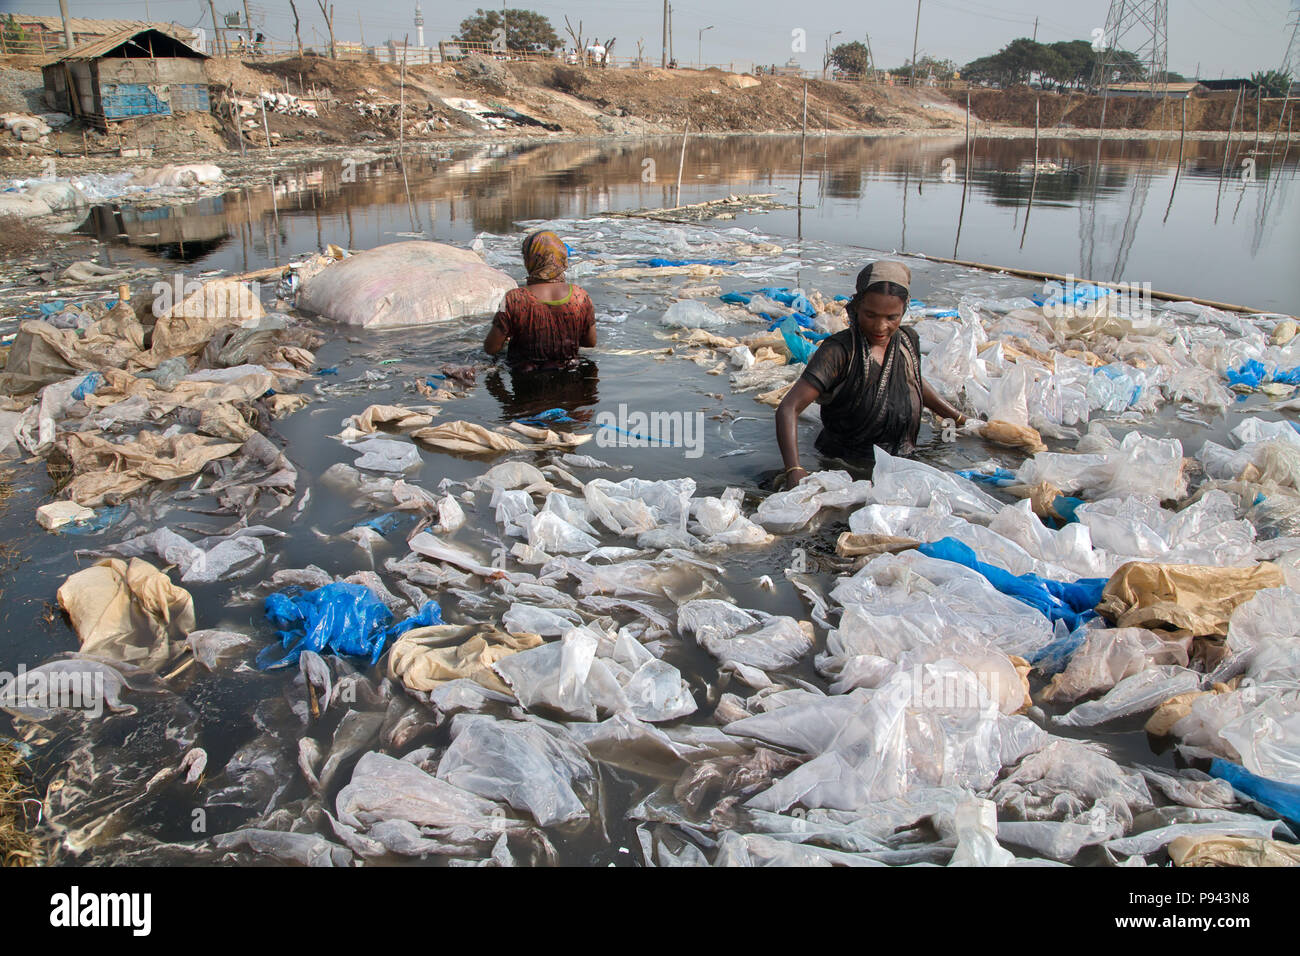 Women working in pond full of toxic waste in Hazaribagh, leather factories / tanneries district, Dhaka, Bangladesh - Stock Image